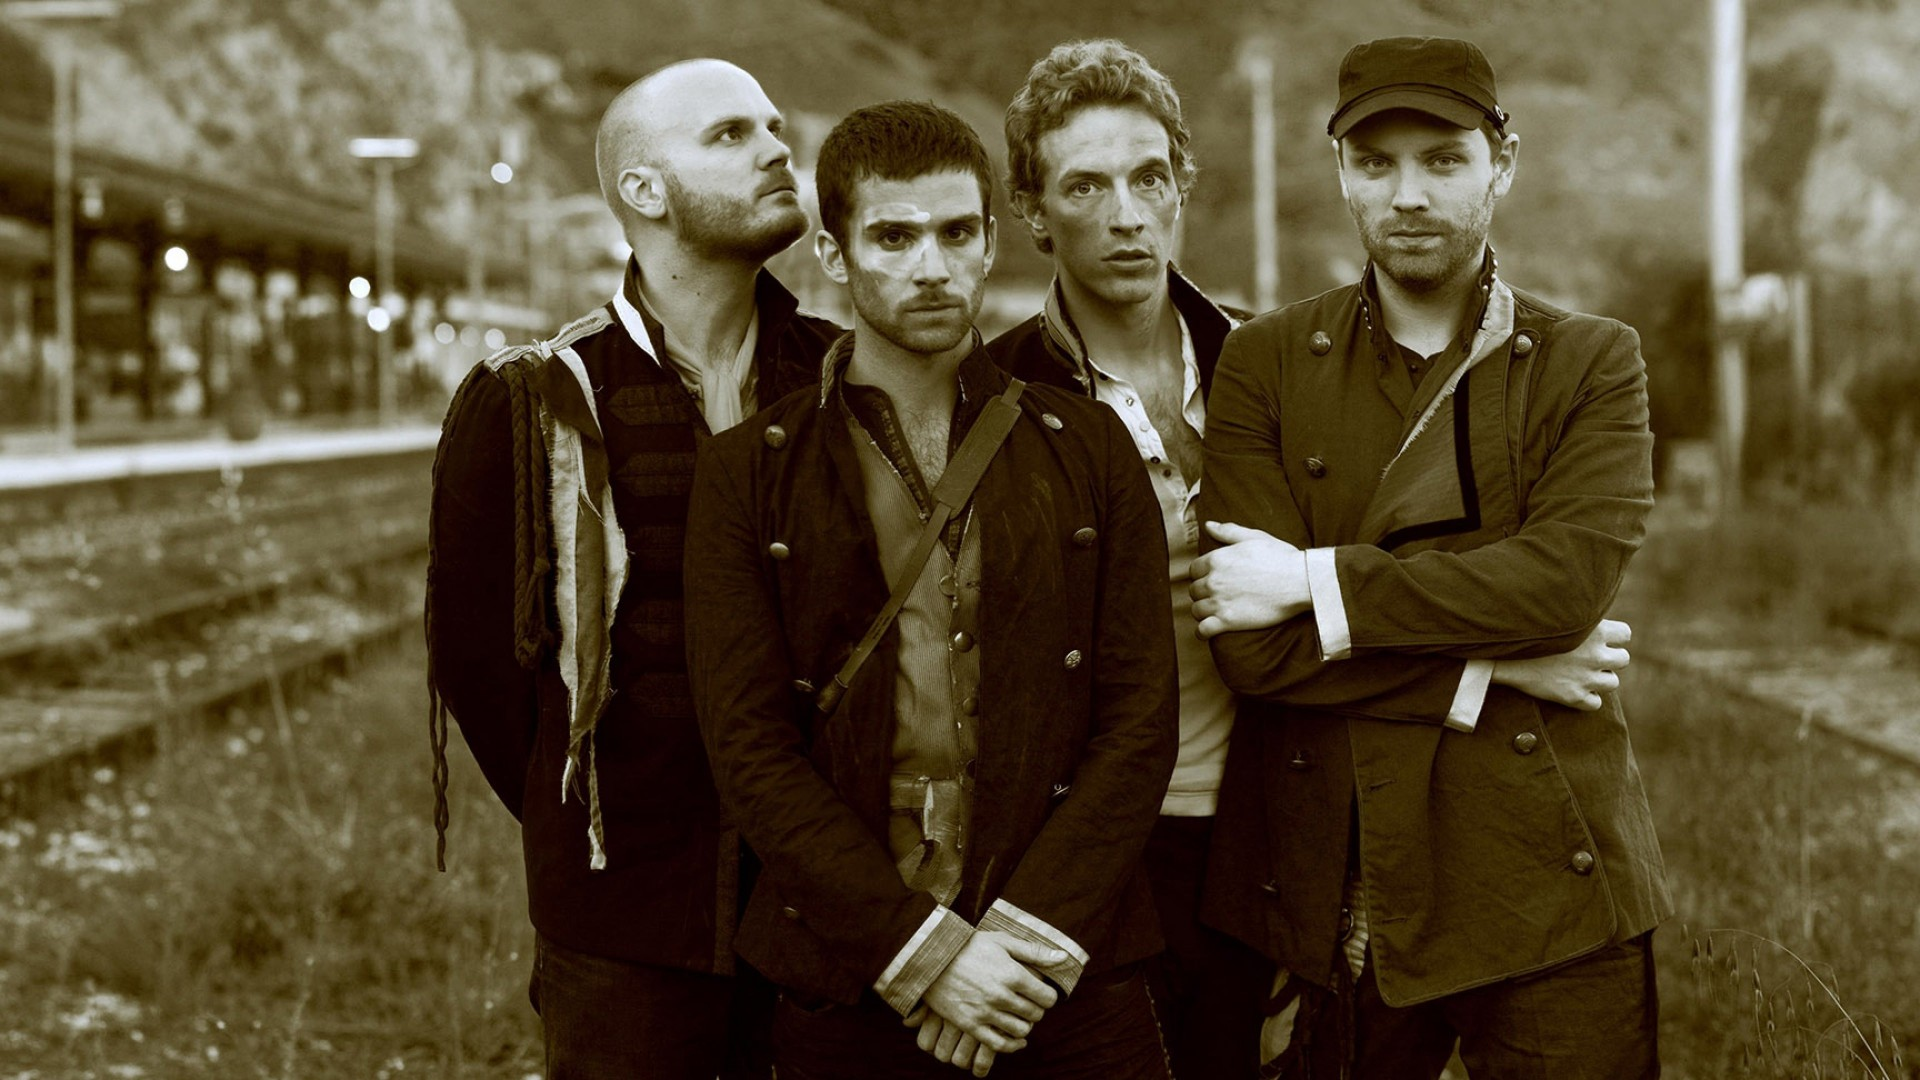 Coldplay Band Sepia Wallpaper for Desktop 1920x1080